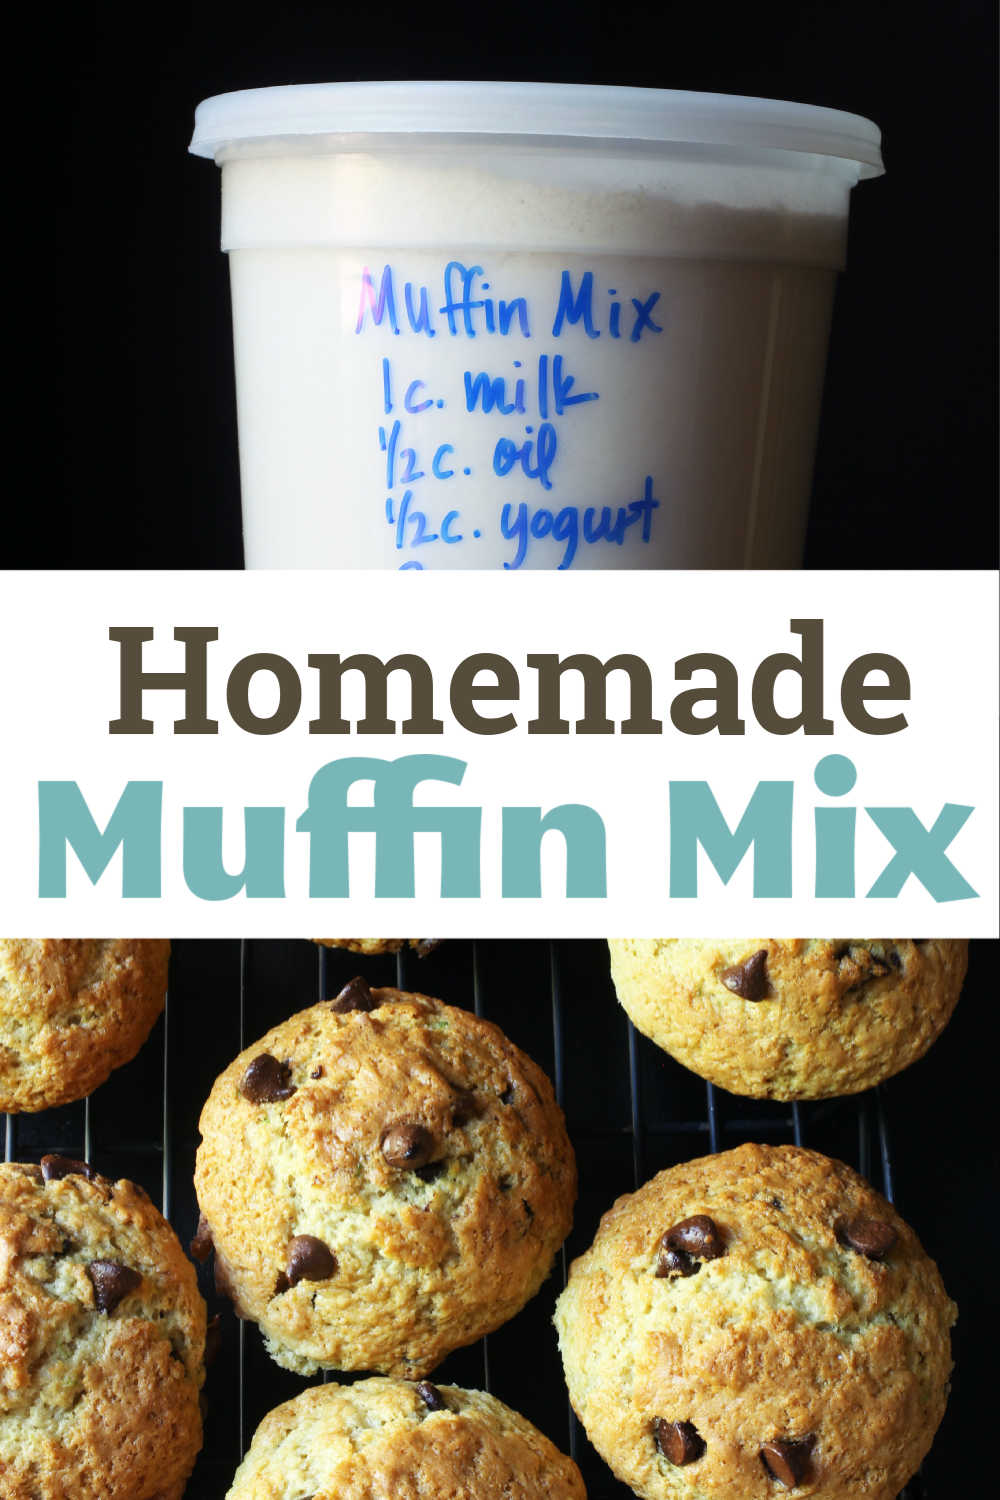 container of Muffin Mix next to muffins on rack